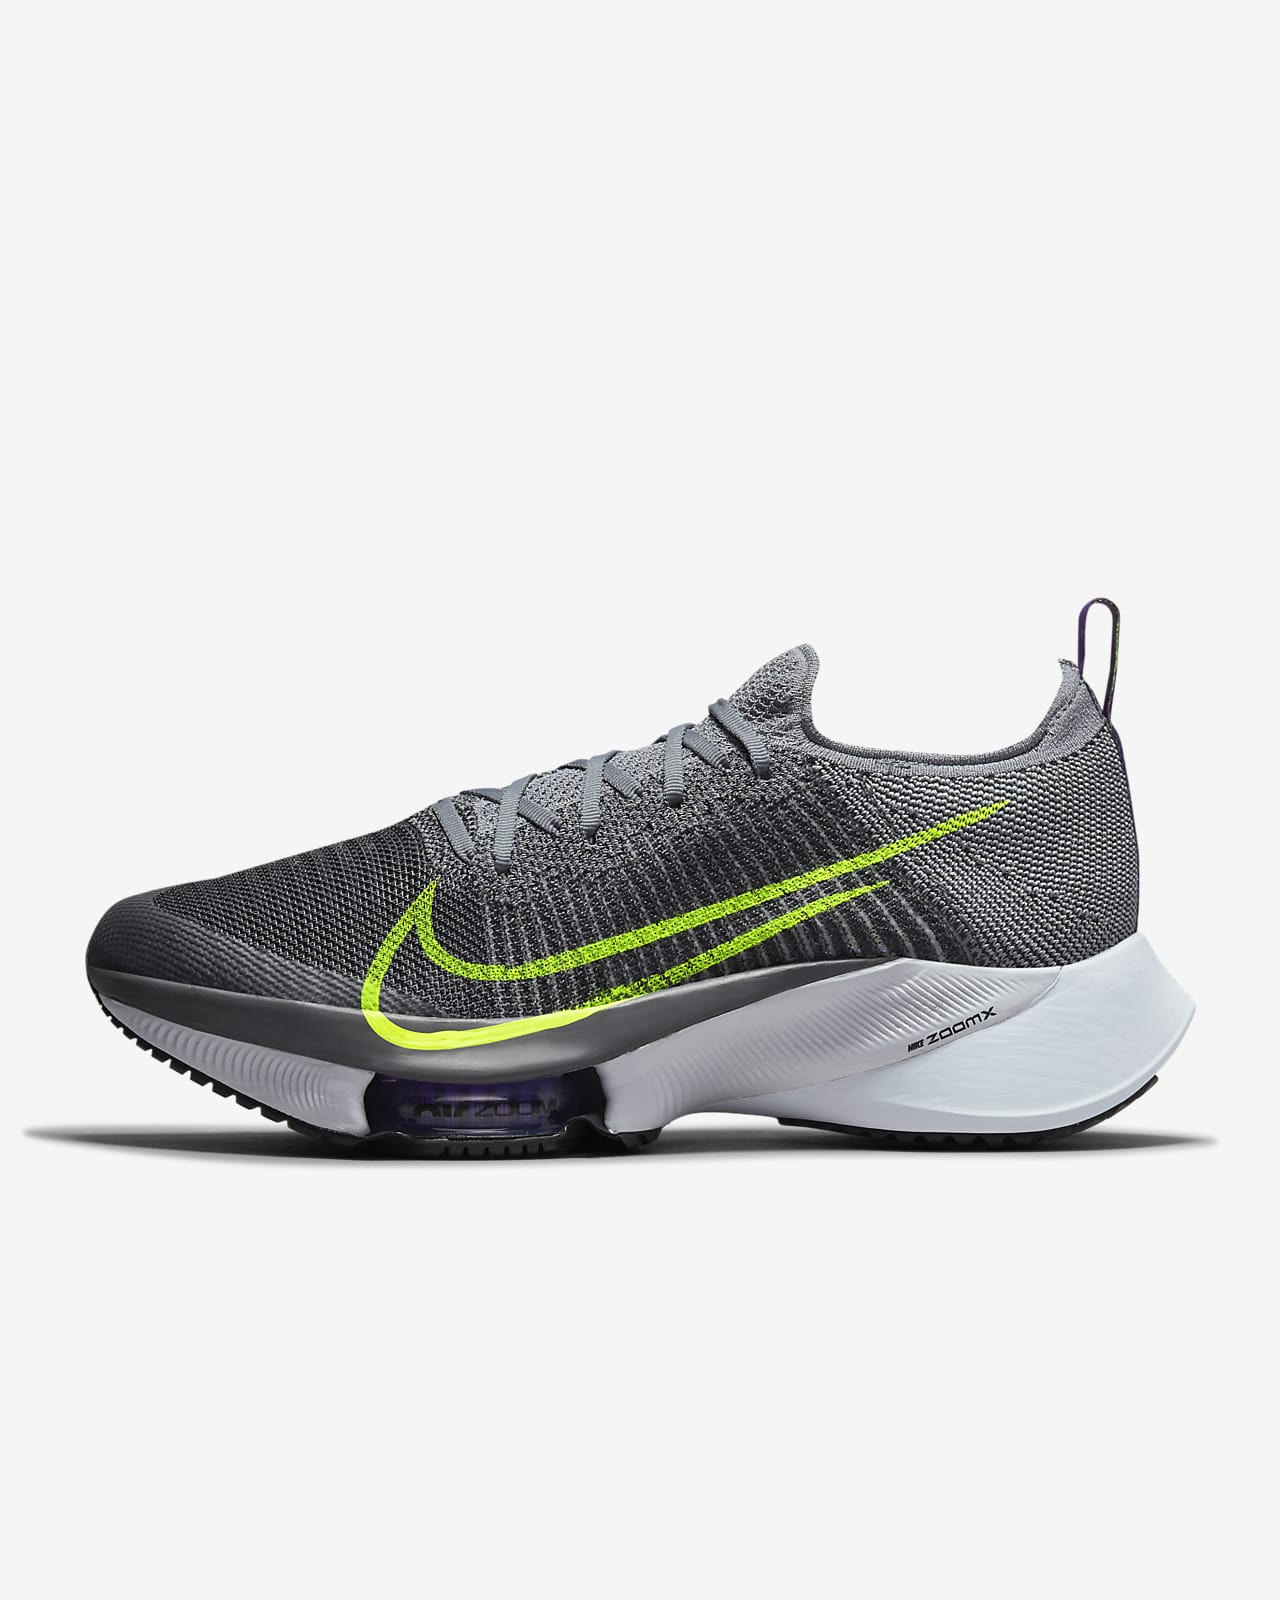 Chaussure de running Nike Air Zoom Tempo NEXT% pour Homme